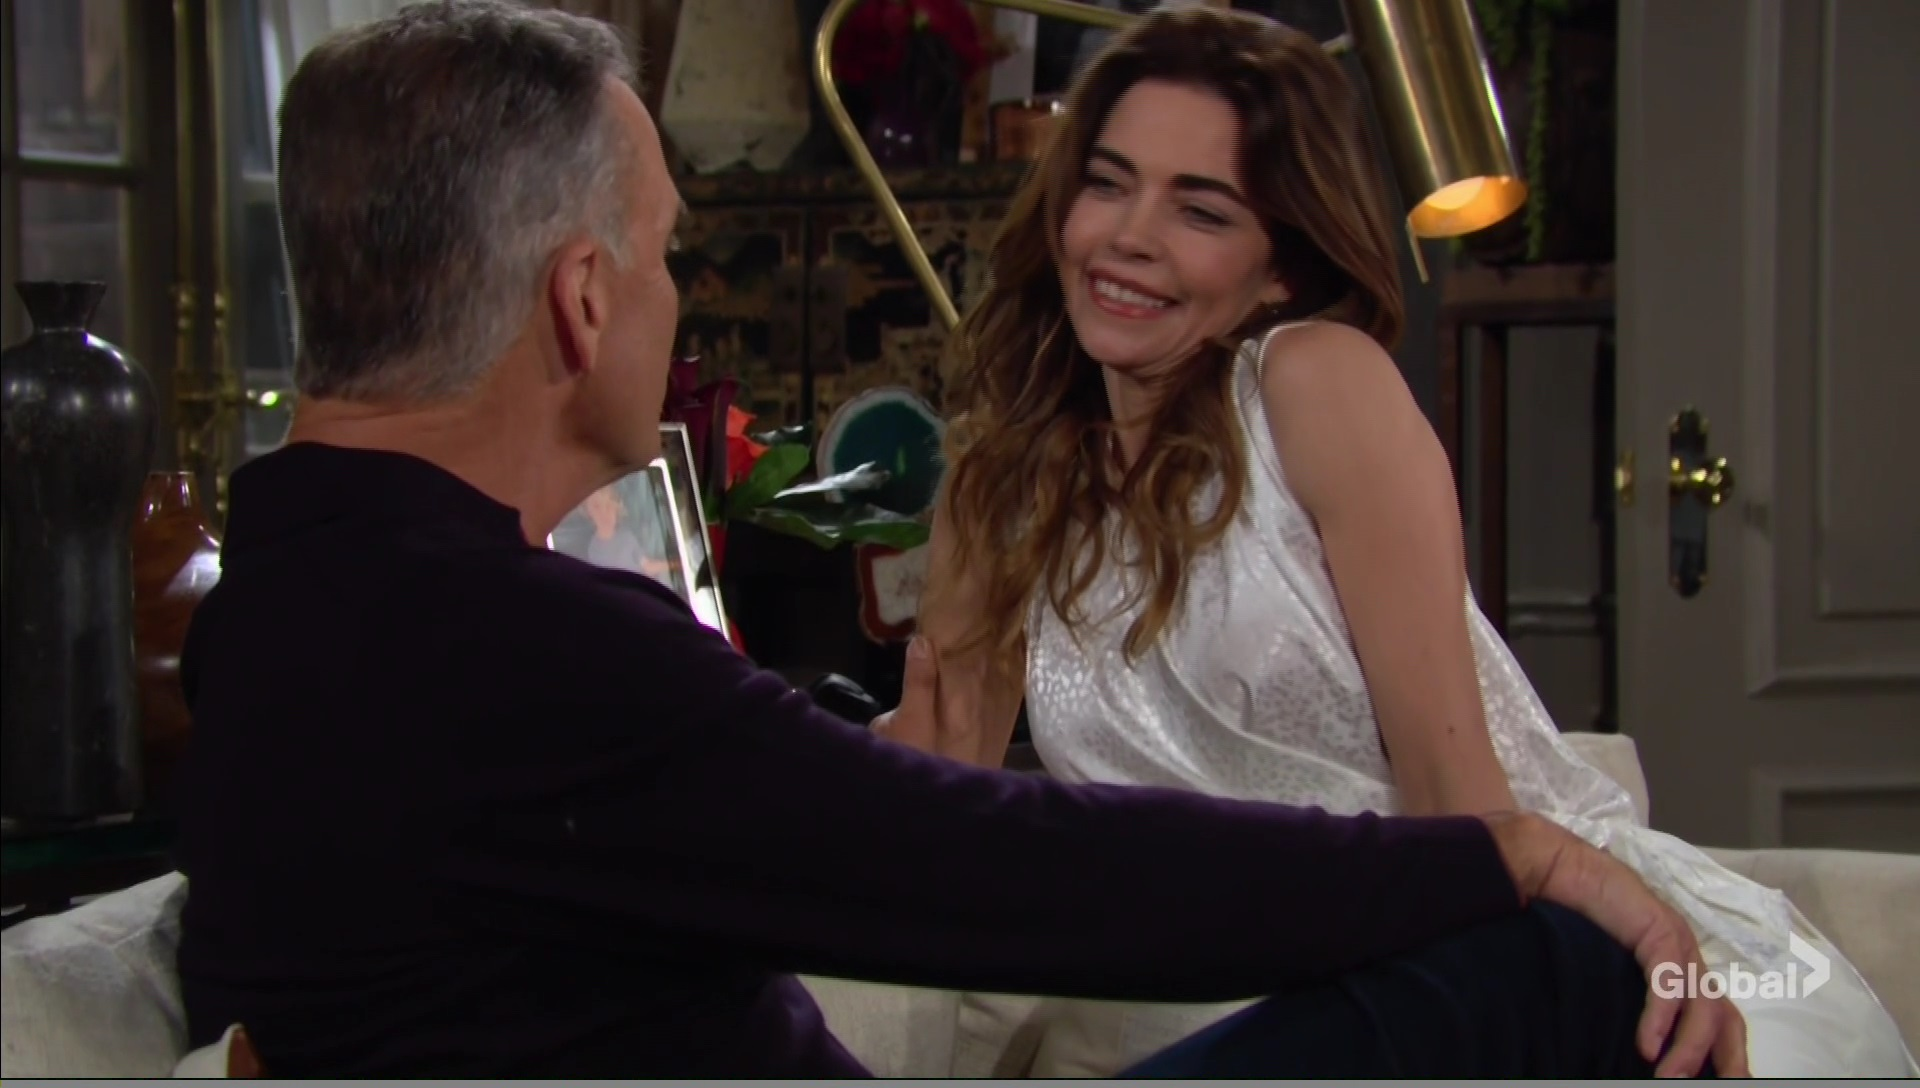 ashland wants to marry victoria young and the restless